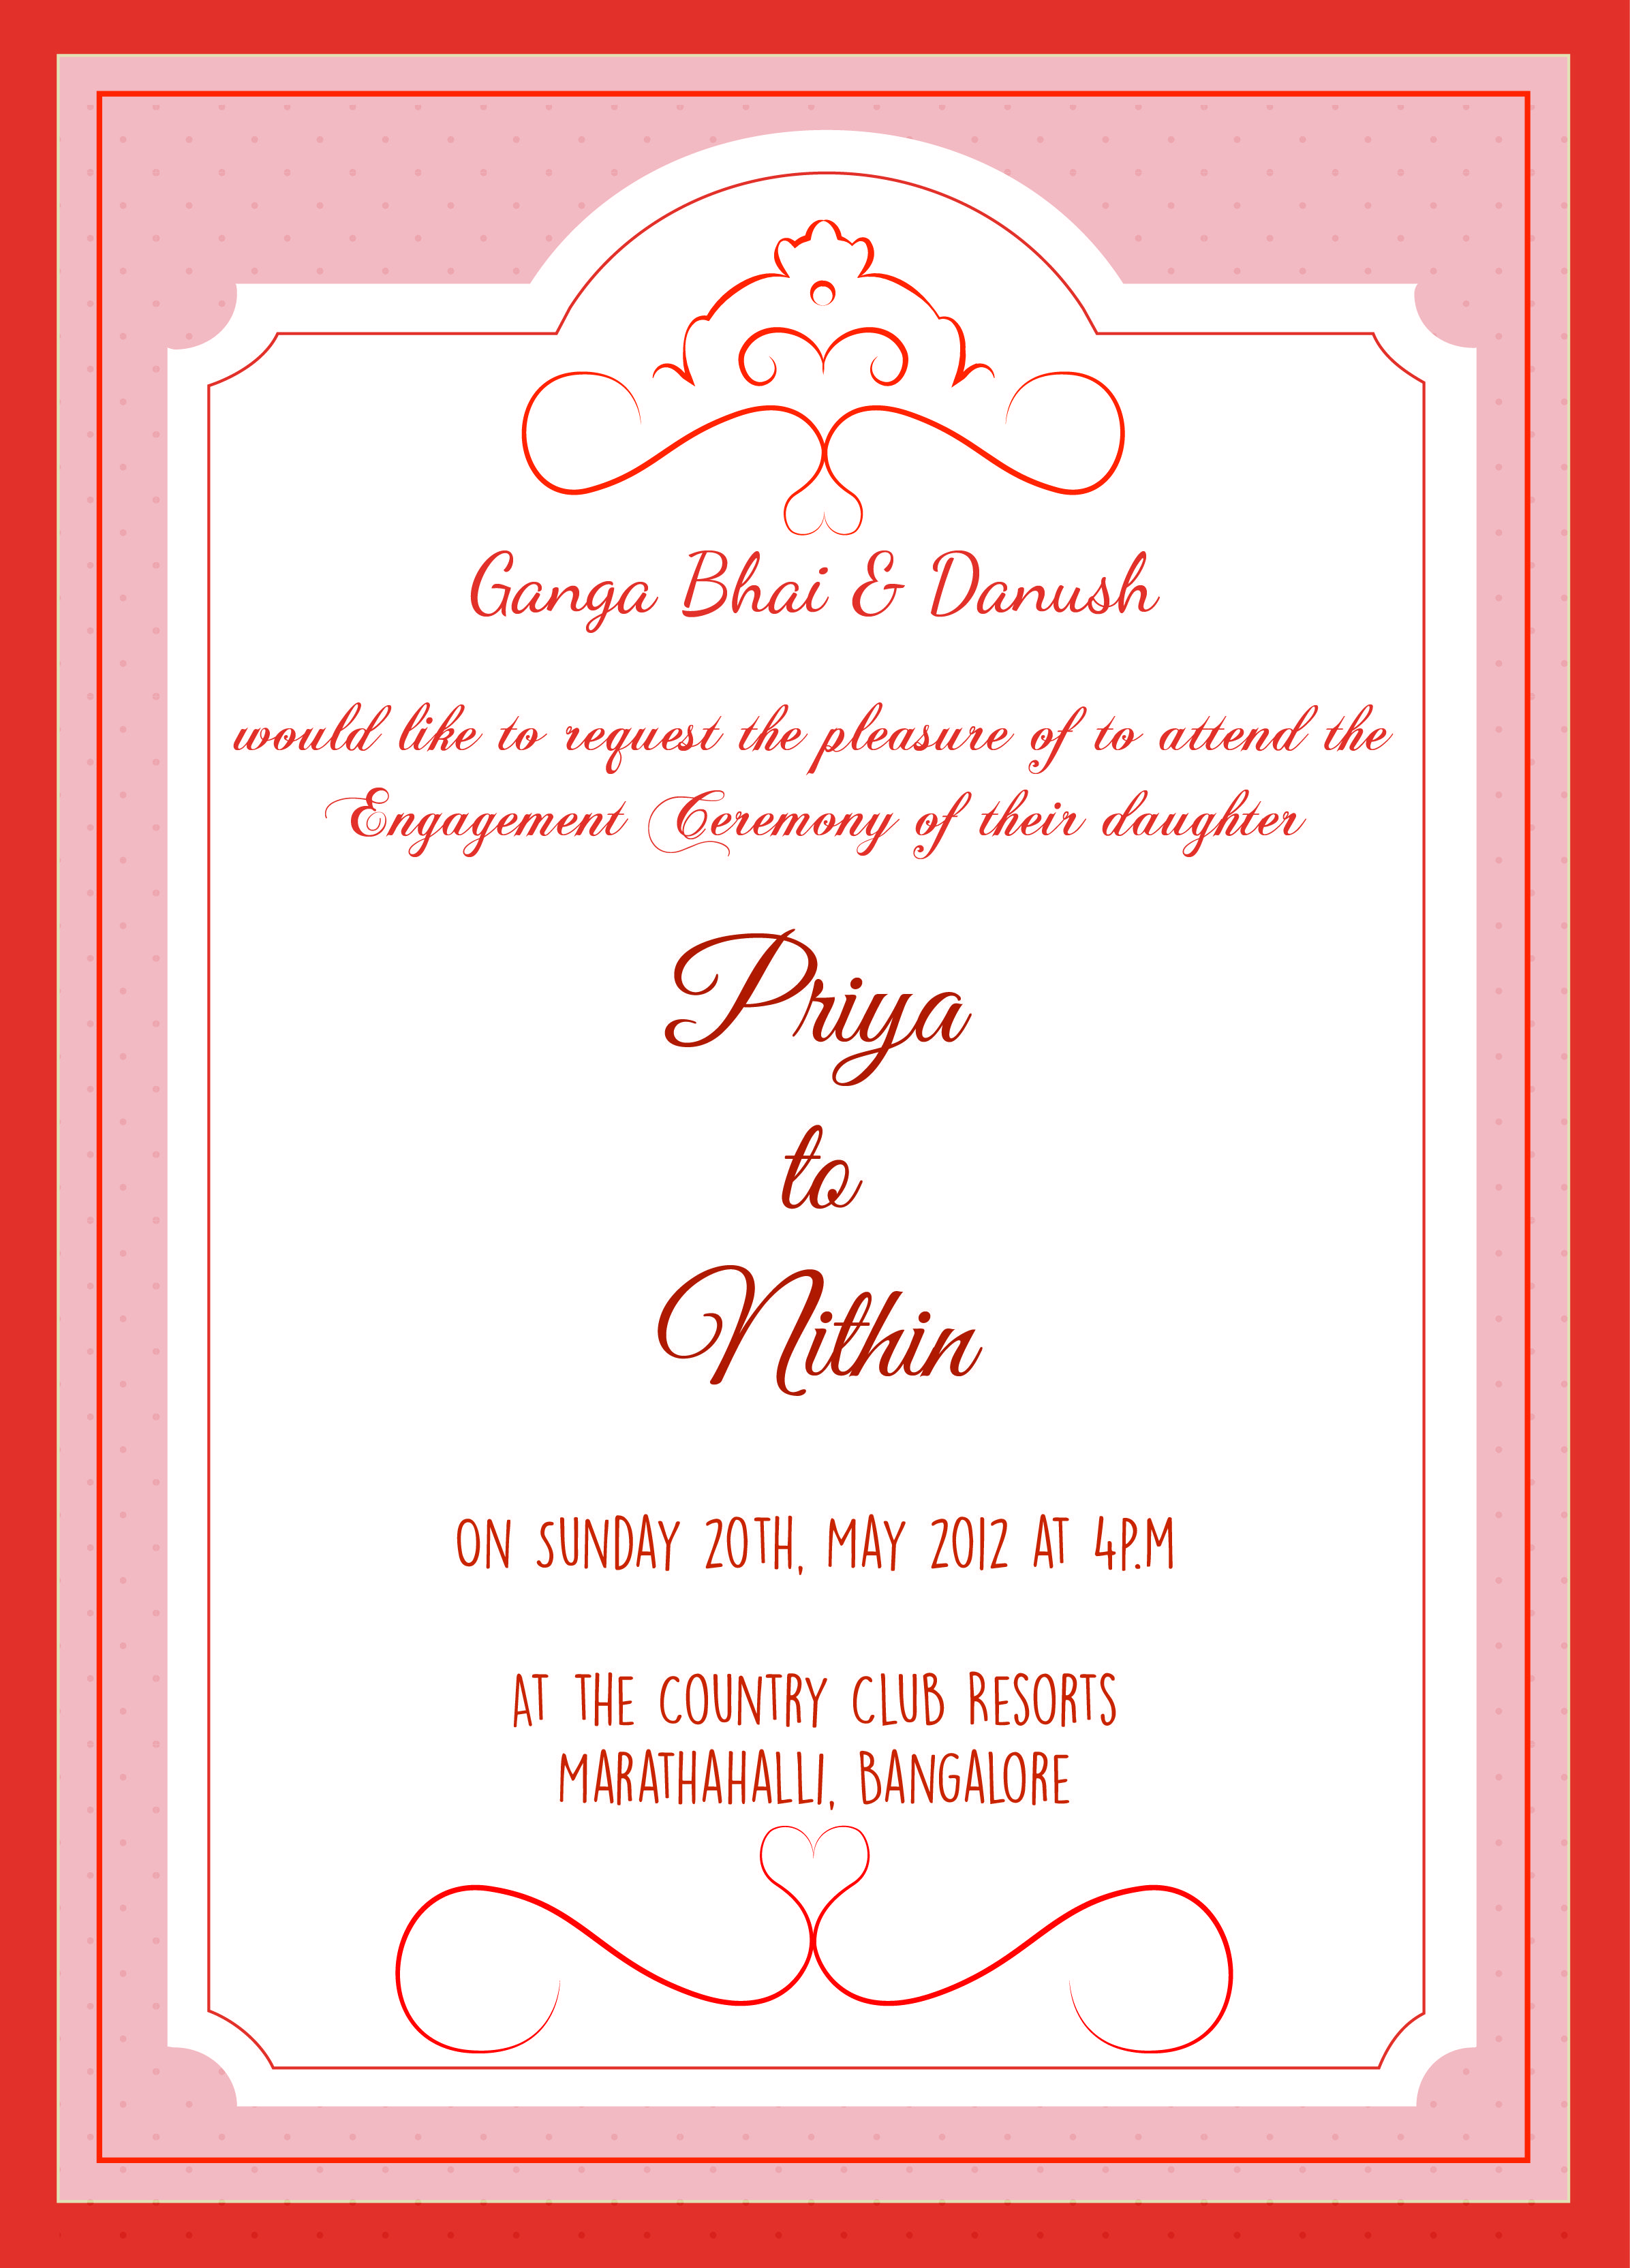 Formal Invitation Letter In Marathi Engagement Ceremony Invitation Card With Wordings Check It